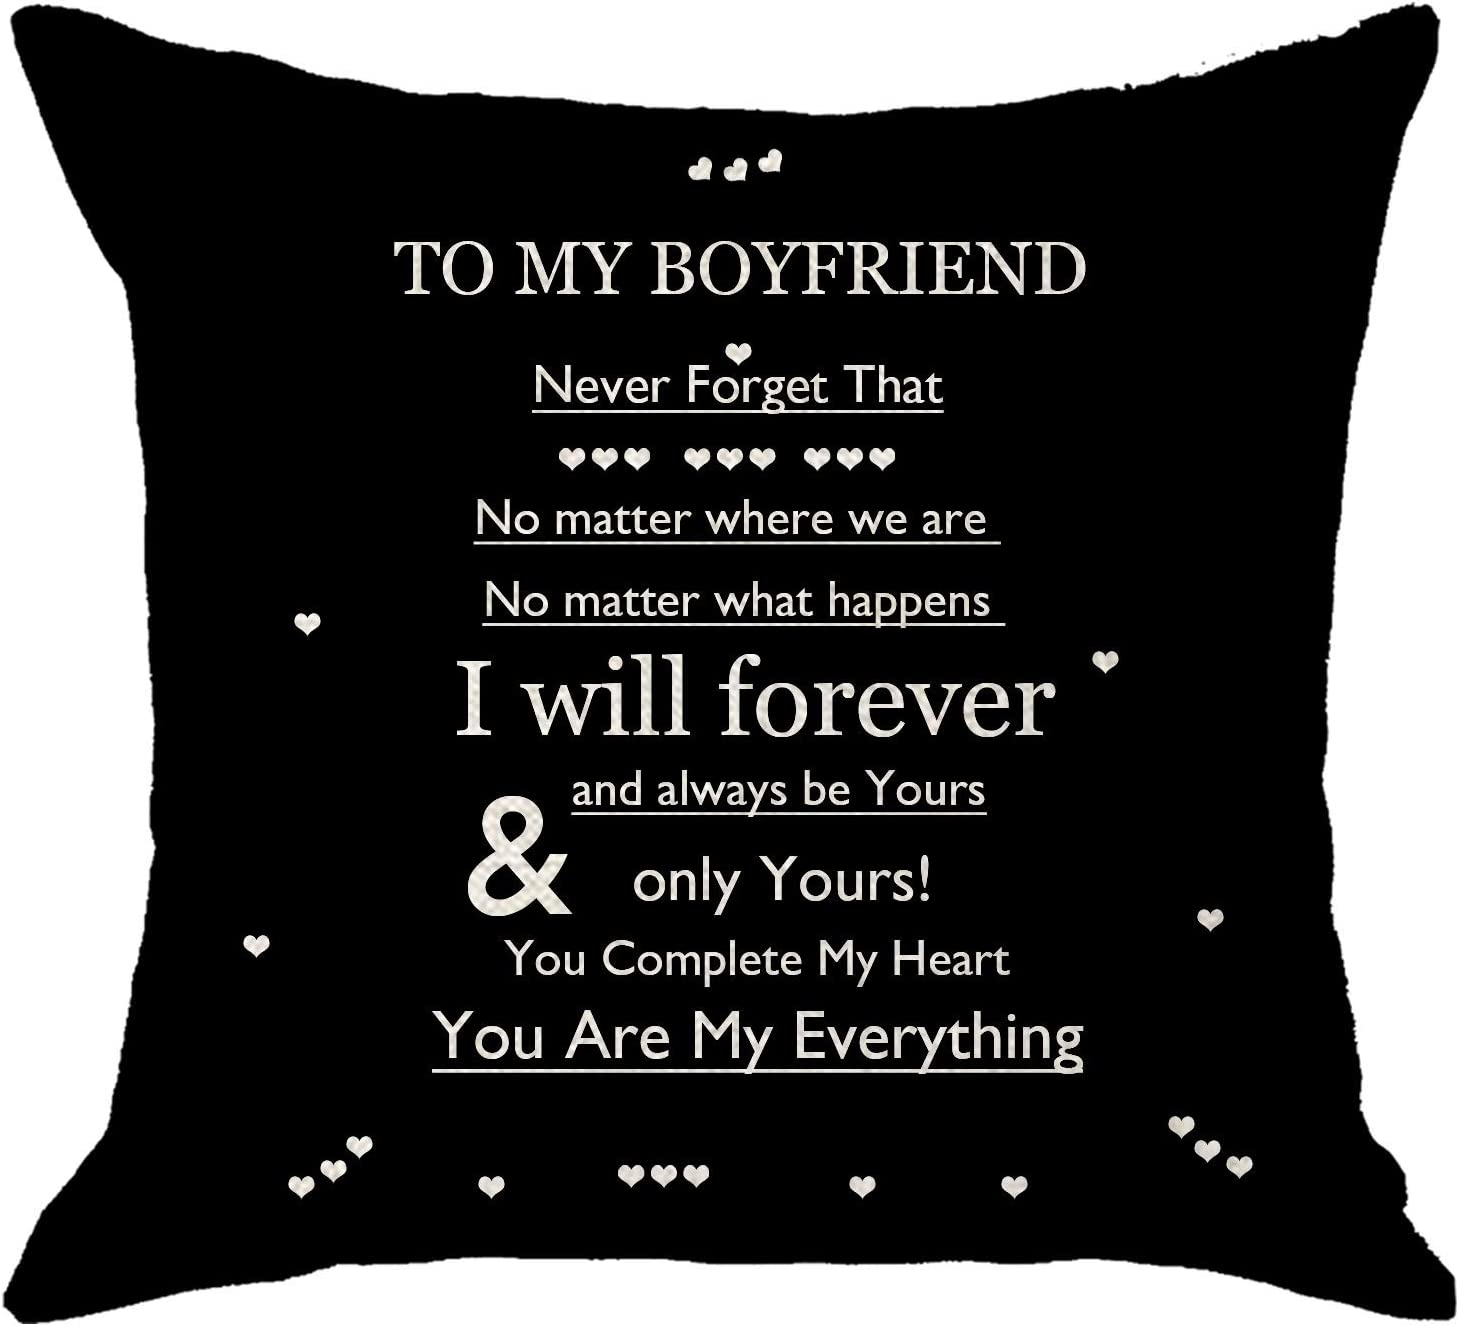 NIDITW Boyfriend Gift from Girlfriend Black Body Burlap Decorative Square Pillow Case Cushion Cover for Chair 45x45cm